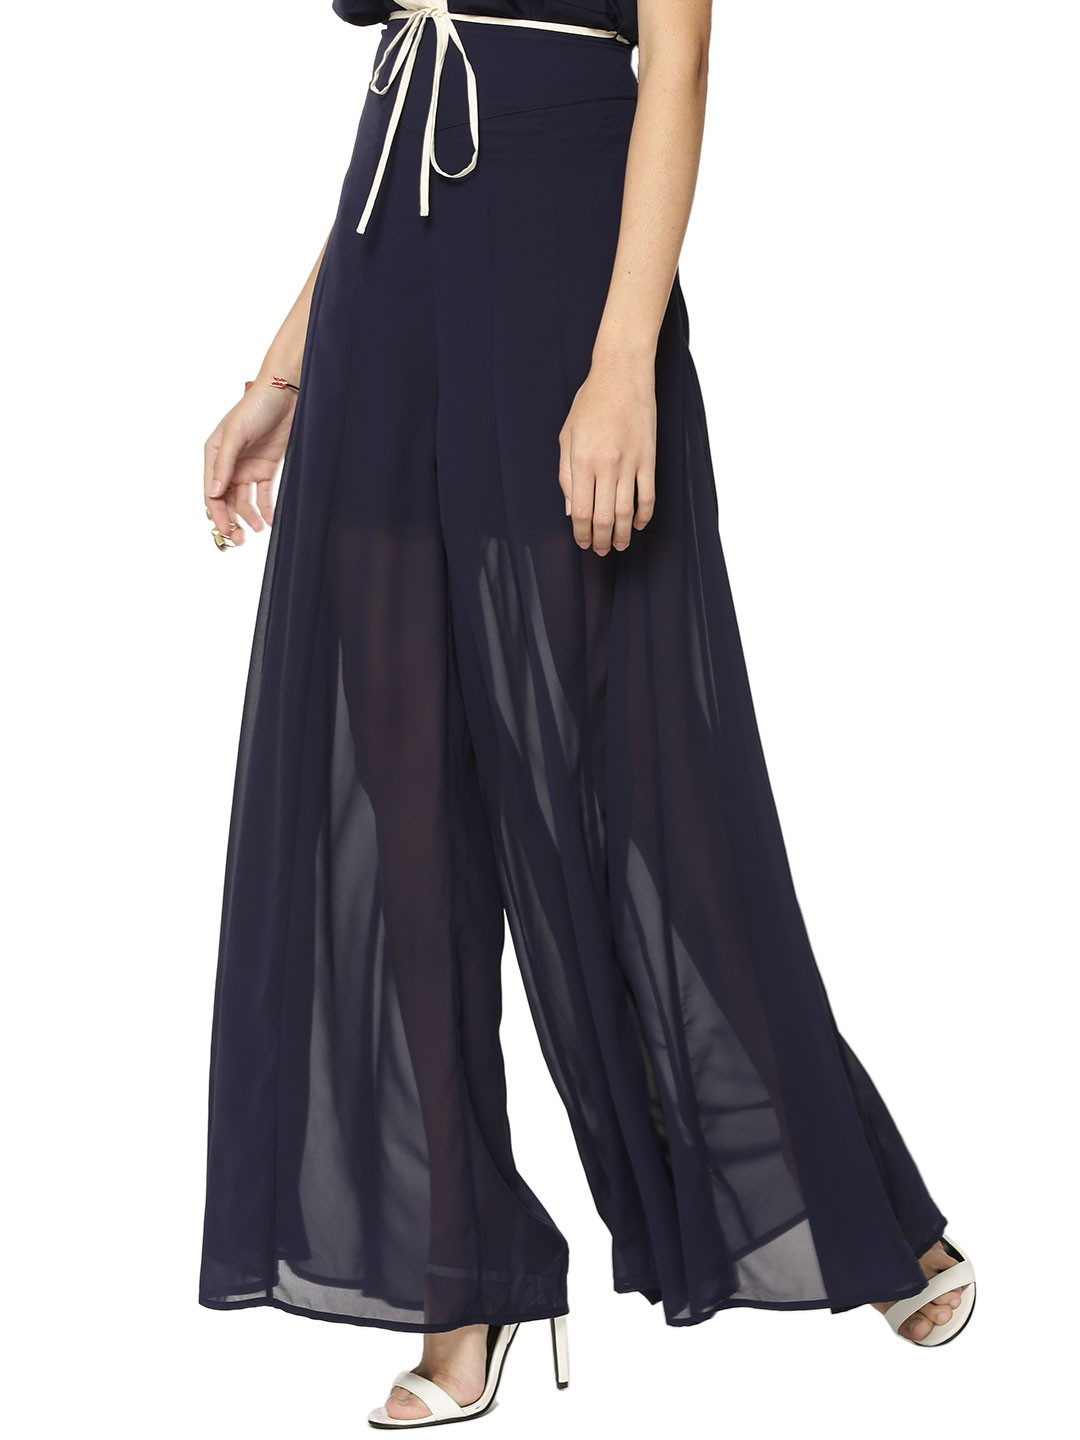 Free shipping on trouser & wide-leg pants for women at stilyaga.tk Shop for wide-leg pants & trousers in the latest colors & prints from top brands like Topshop, stilyaga.tk, NYDJ, Vince Camuto & more. Enjoy free shipping & returns.